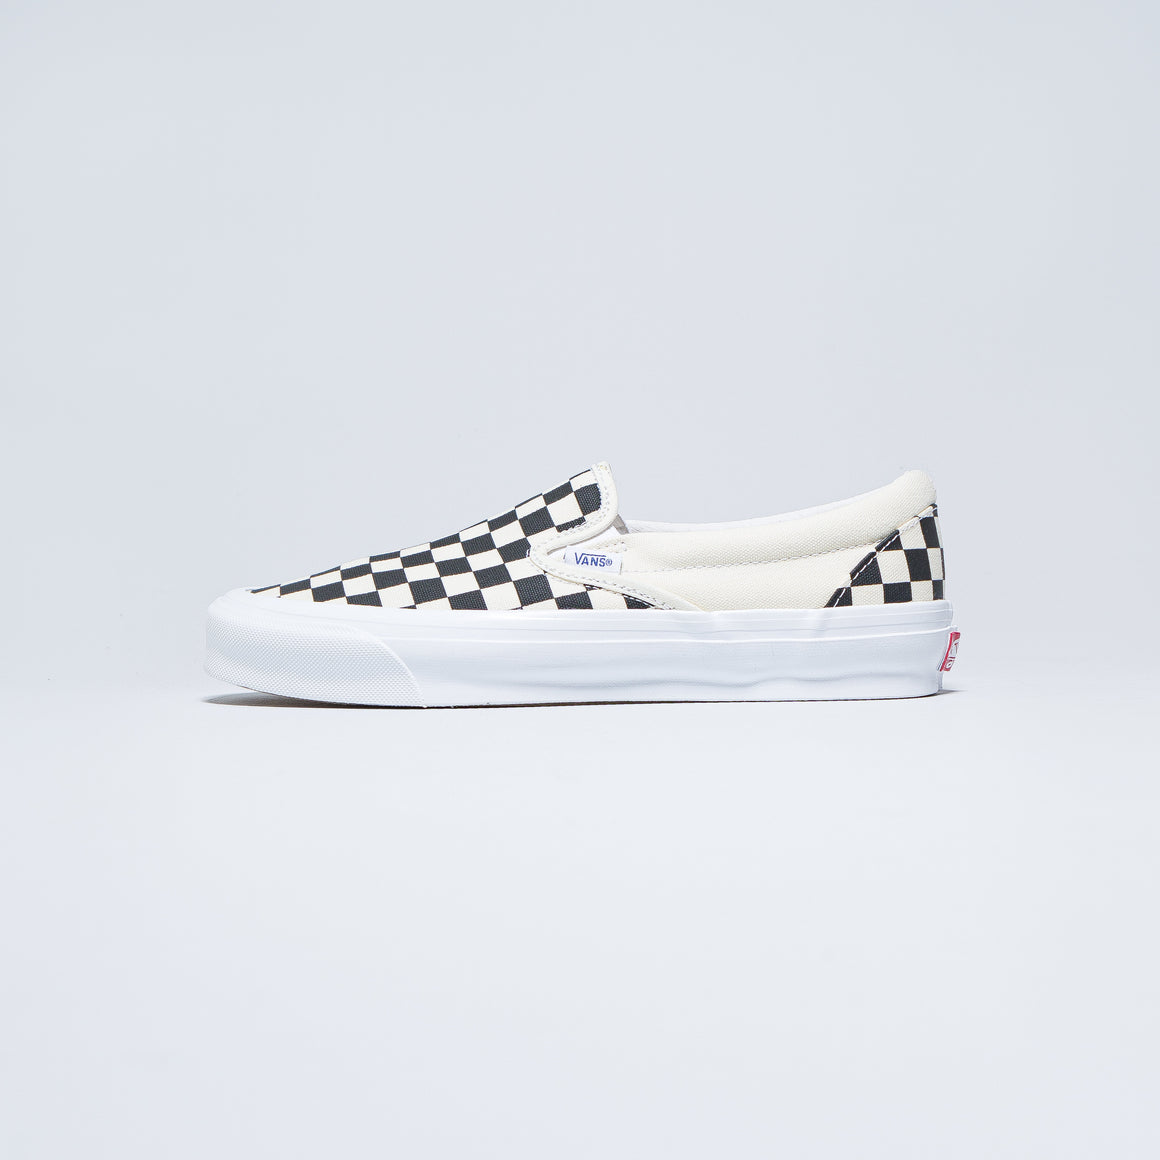 Vans - OG Classic Slip-On LX - Checkerboard - Up There